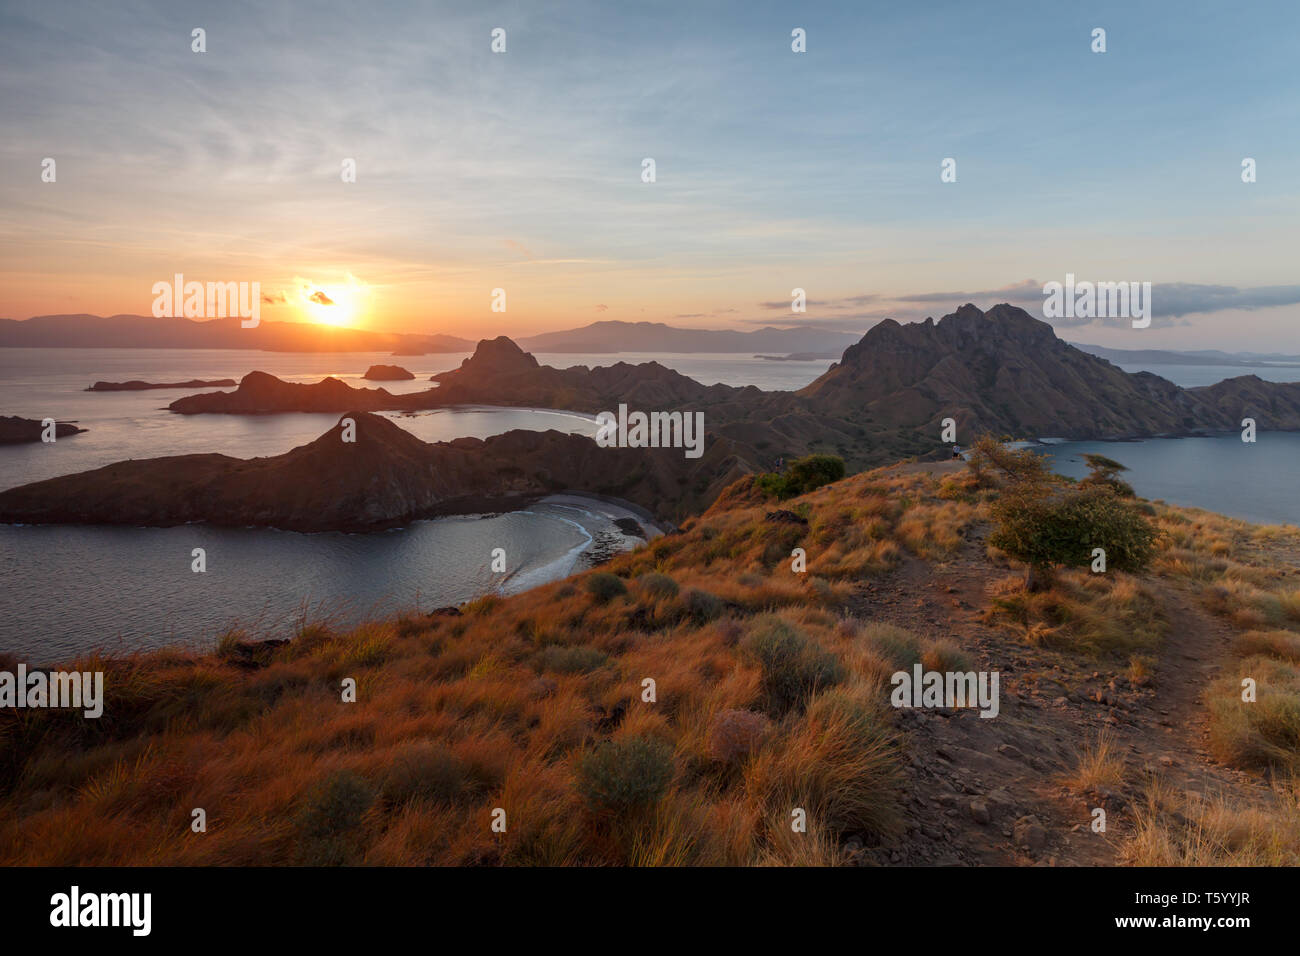 Sunset from hilltop on mountains in Komodo national park silhouettes multiple rock outcrops off shore - Stock Image